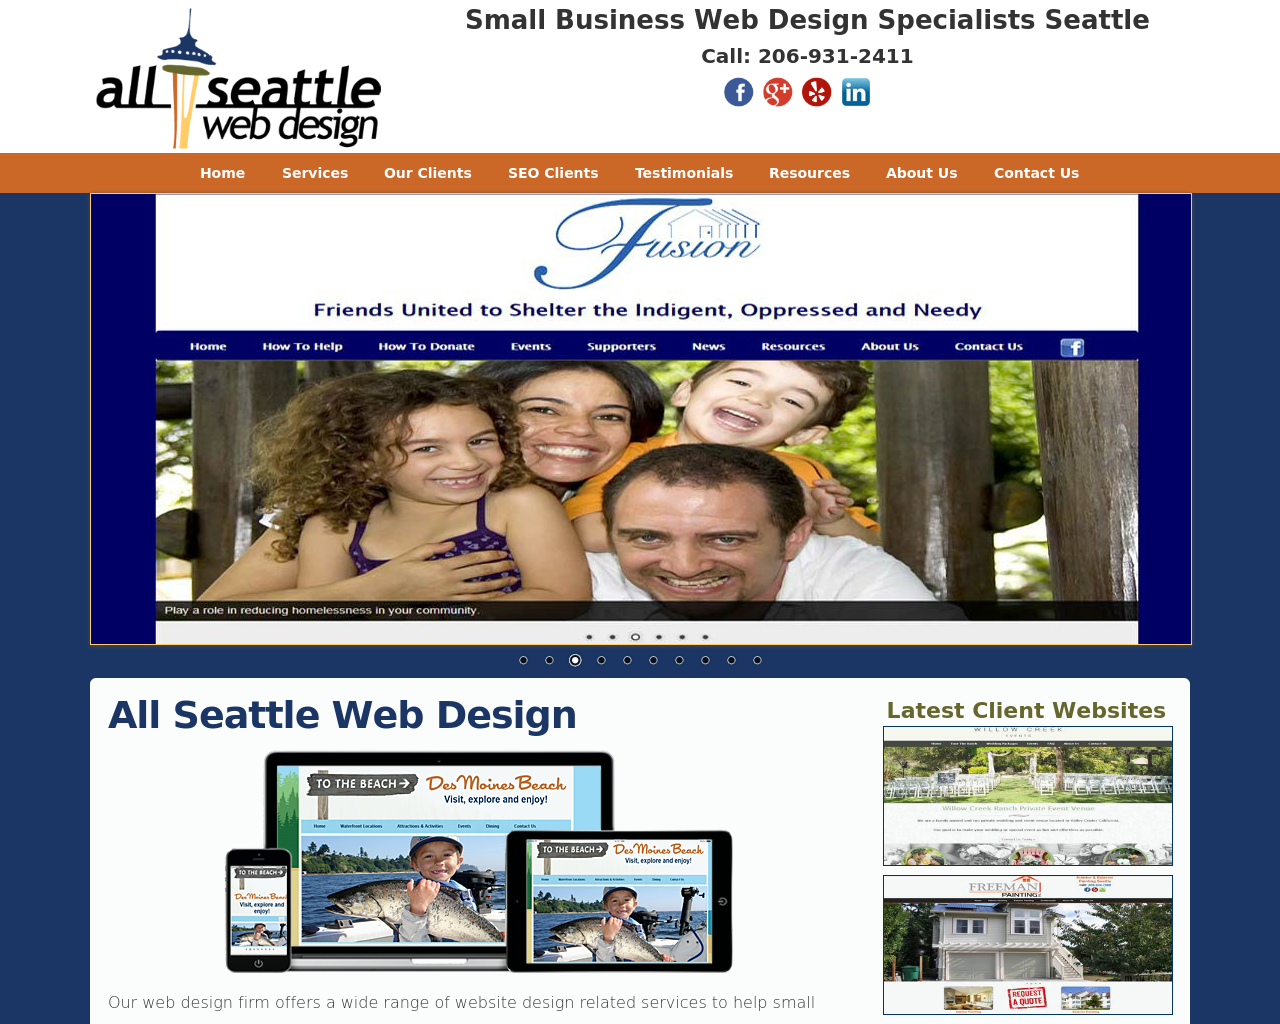 All-Seattle-Web-Design-Advertising-Reviews-Pricing